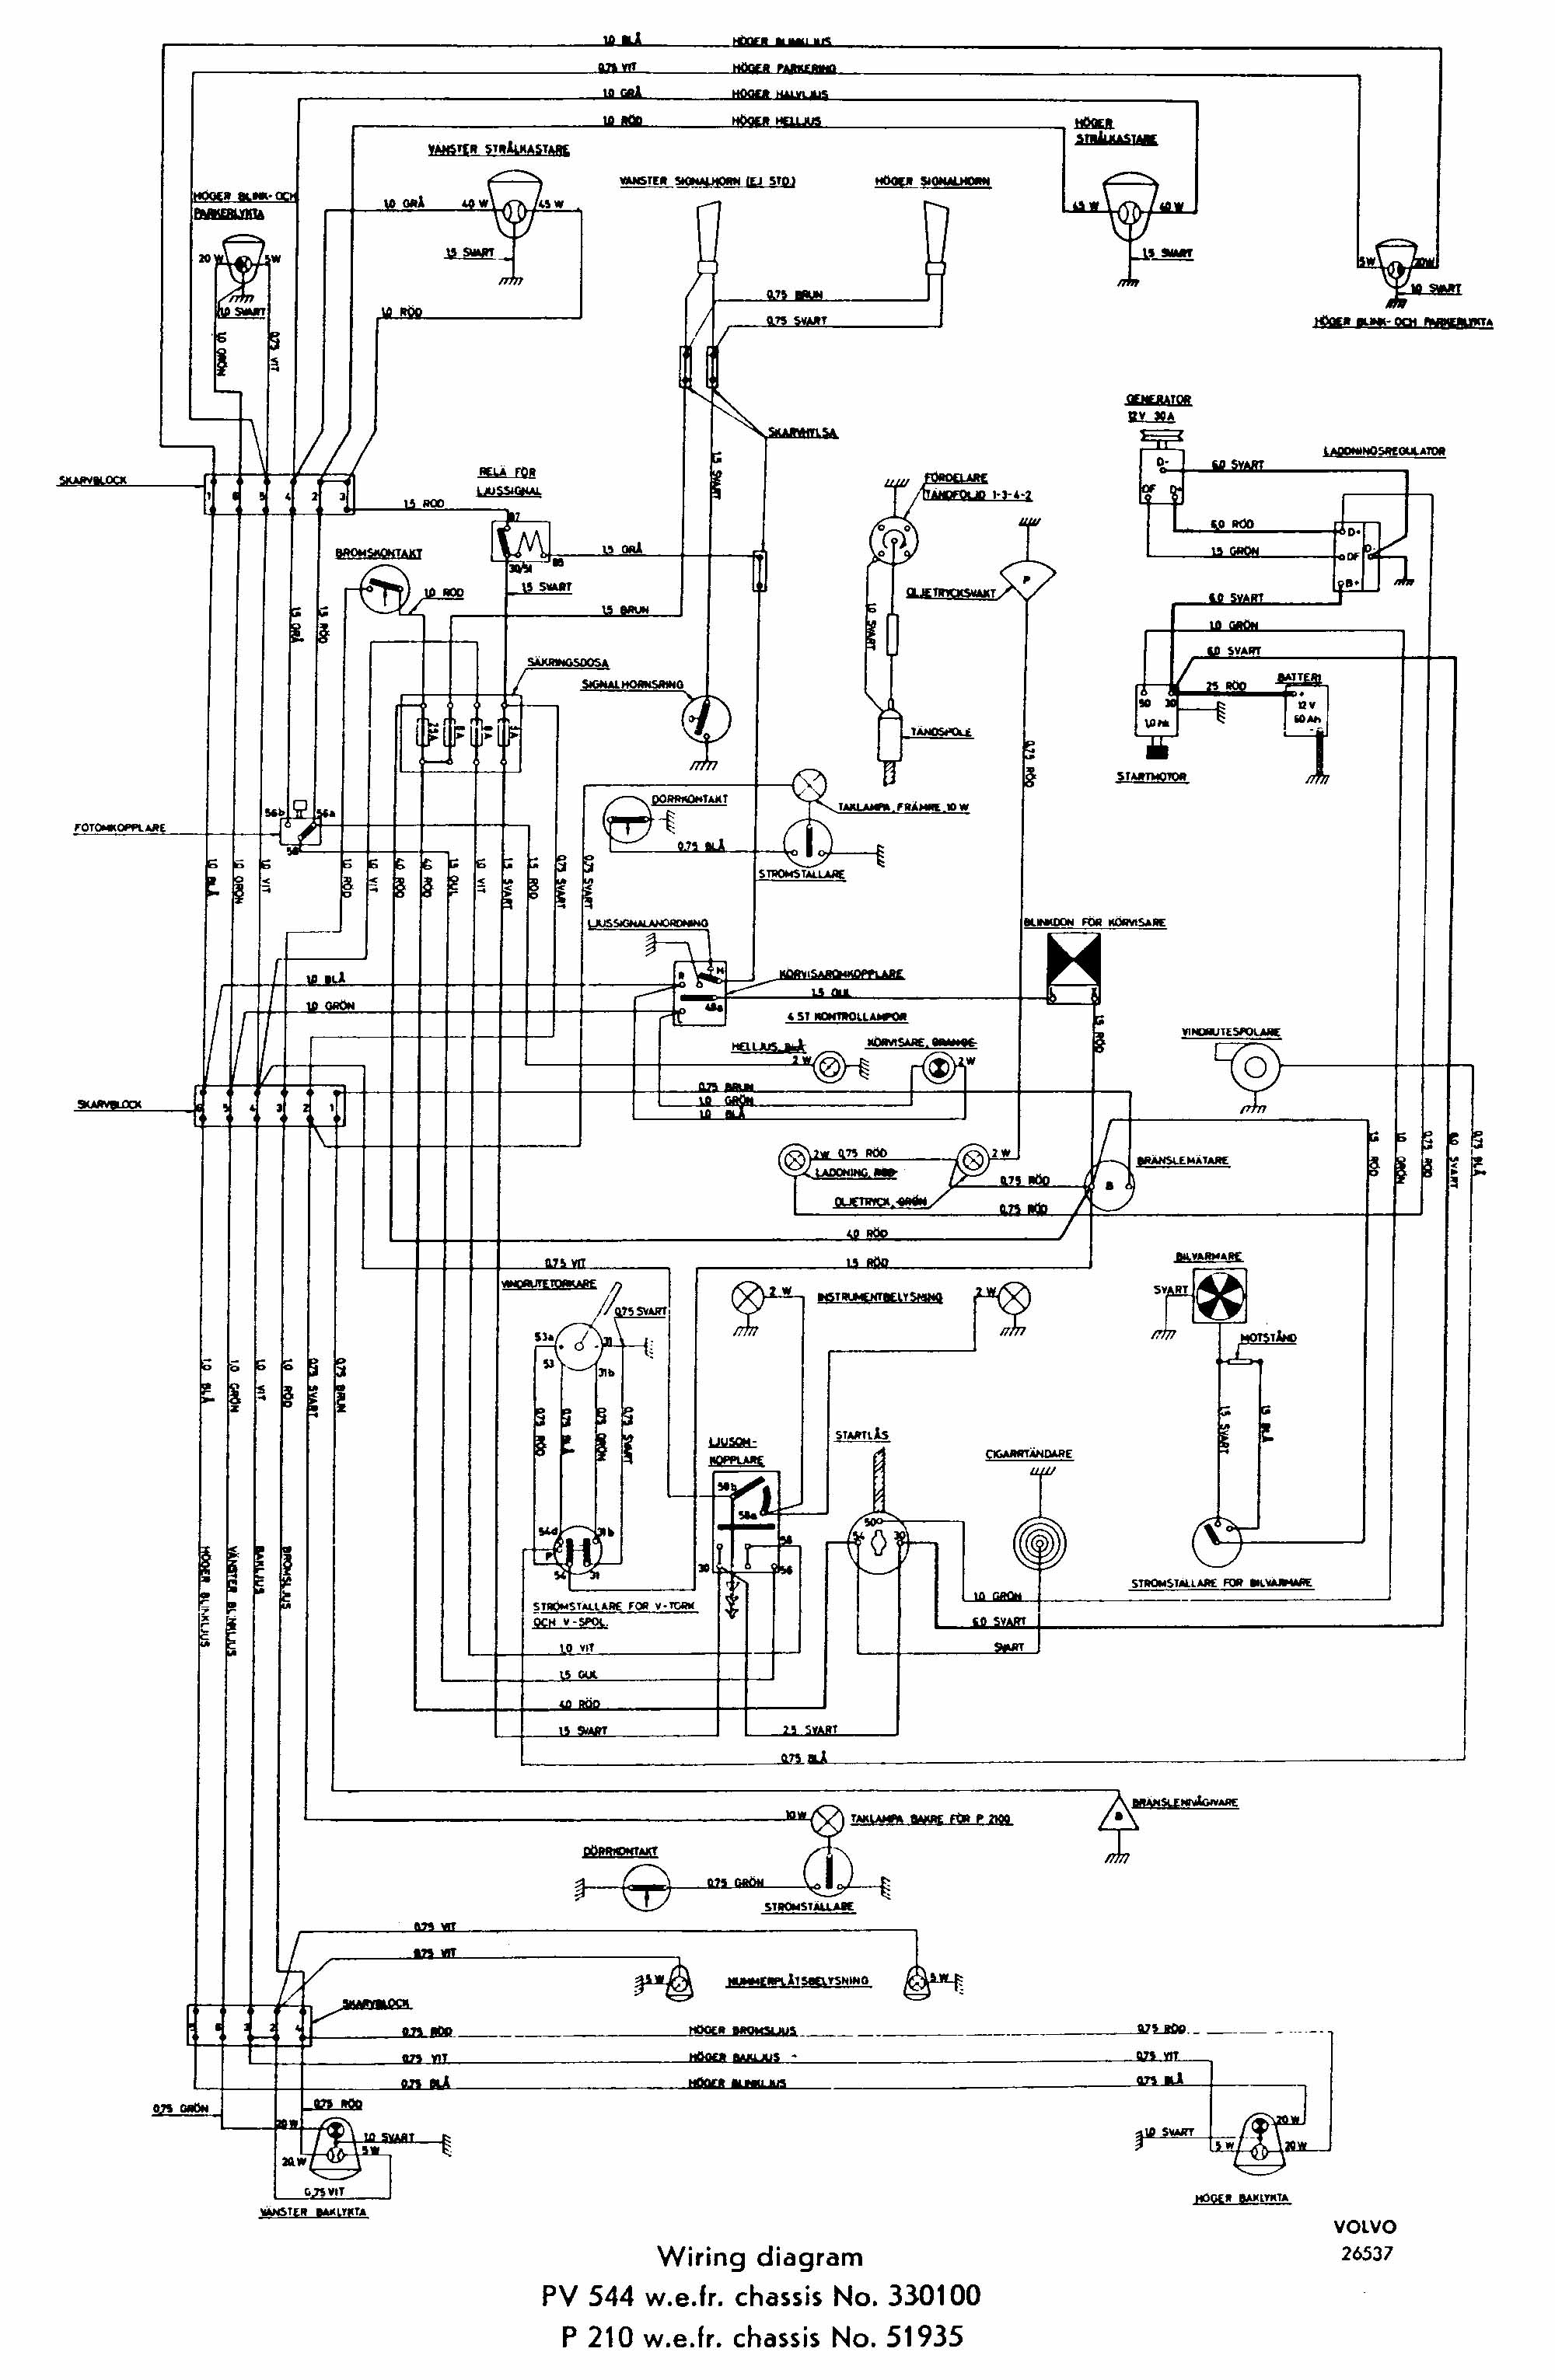 wiring diagram for a ford f150 1986 head unit